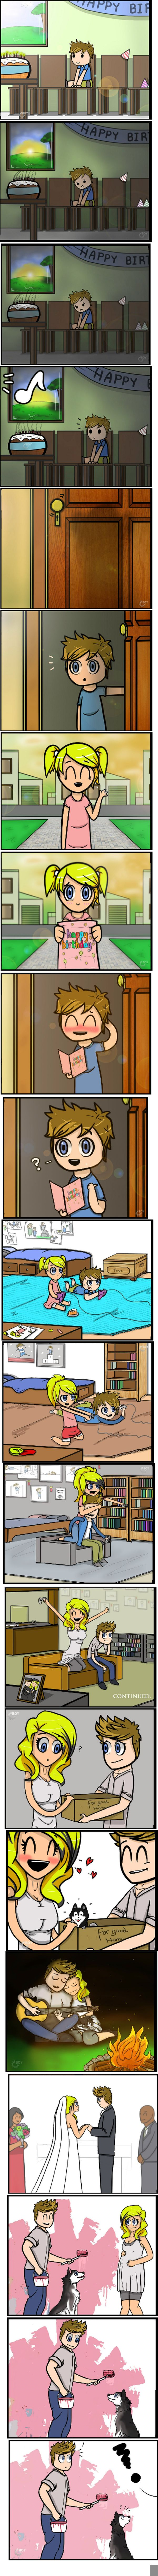 Our Life (6 pics)